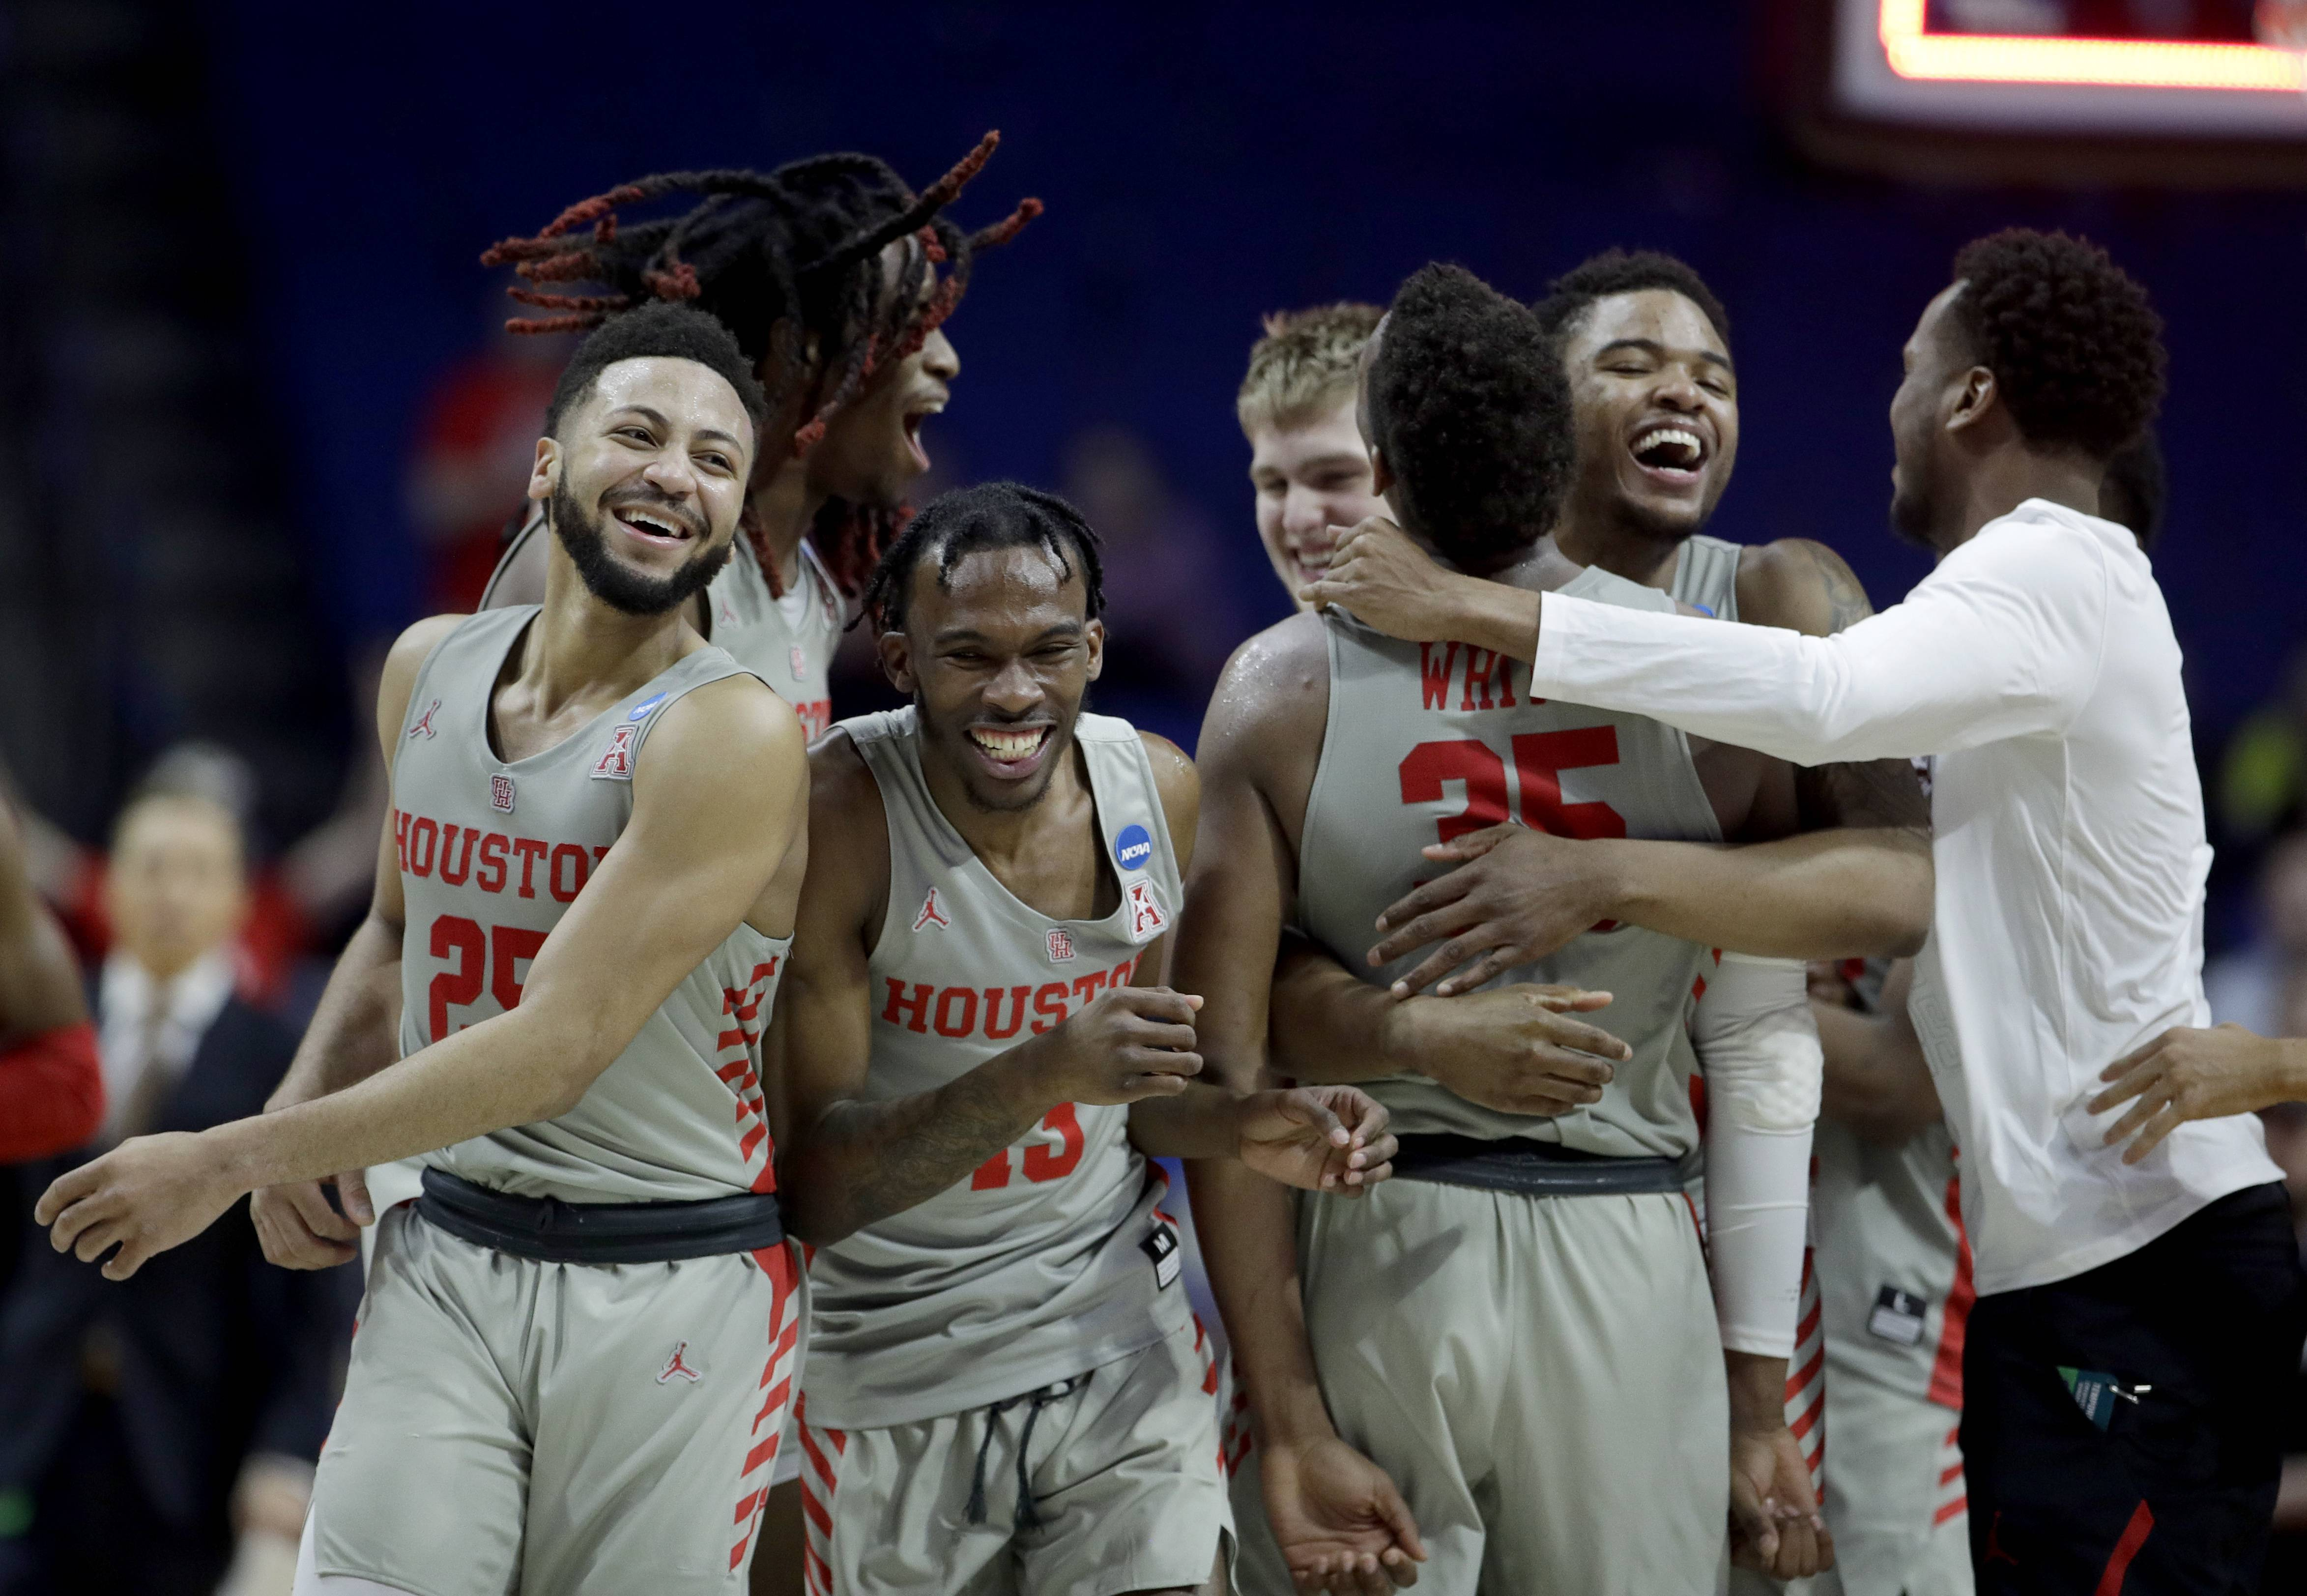 Houston players celebrate Sunday after beating Ohio State in the NCAA Tournament in Tulsa, Oklahoma. Houston won 74-59.